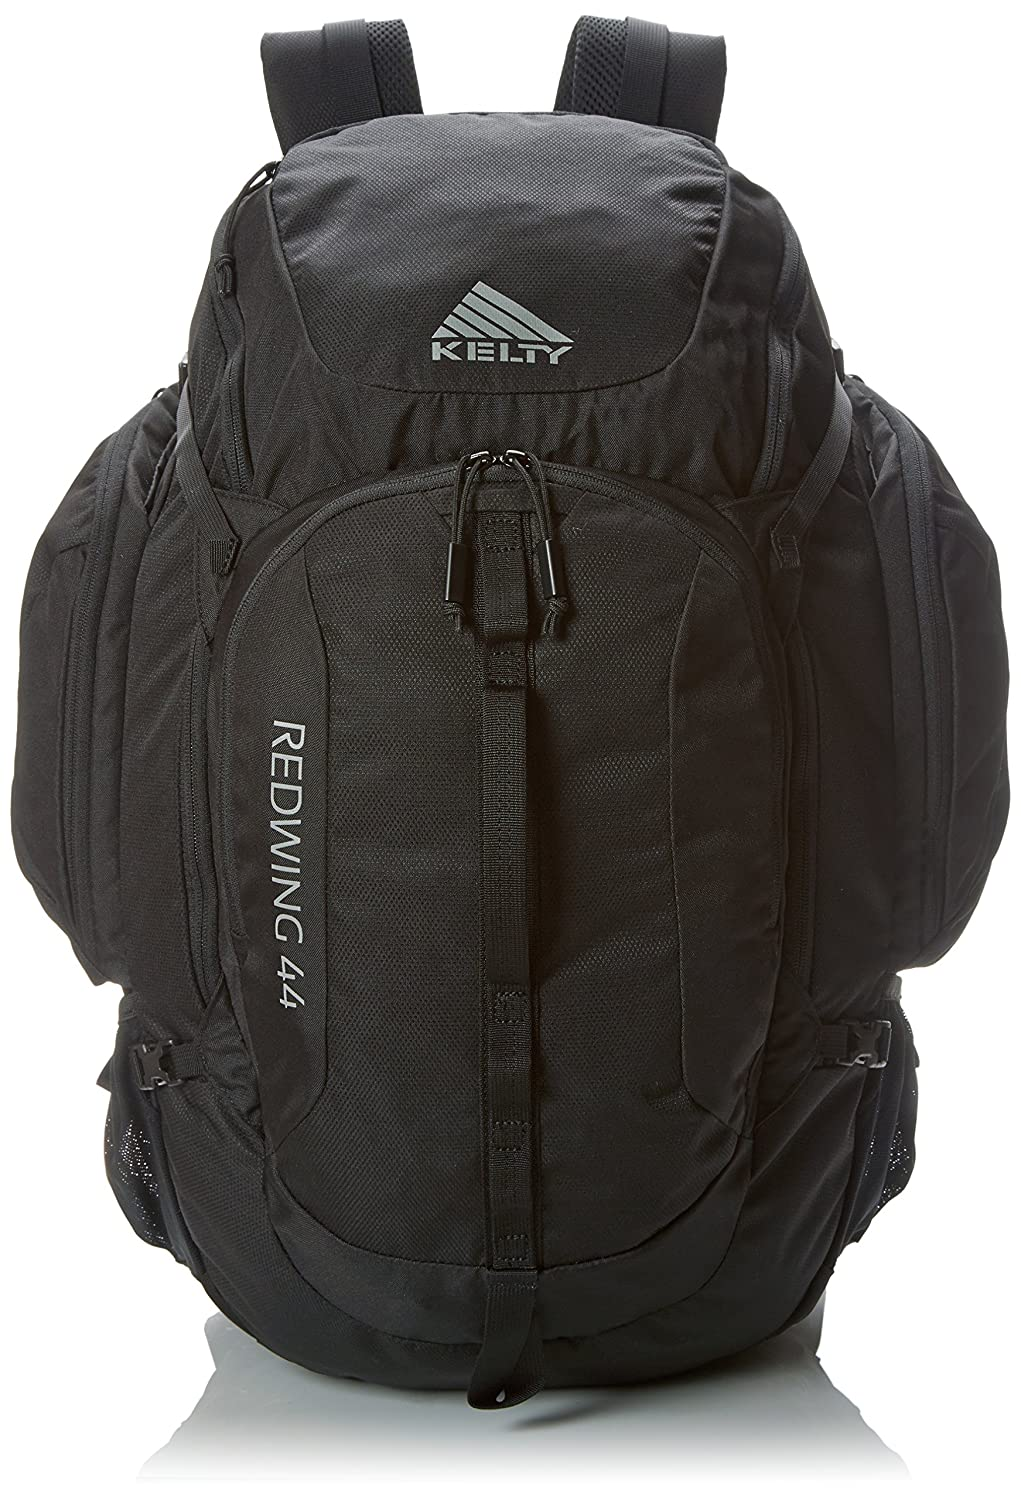 Amazon.com : Kelty Redwing 44 L Backpack 2013 - Black : Internal ...